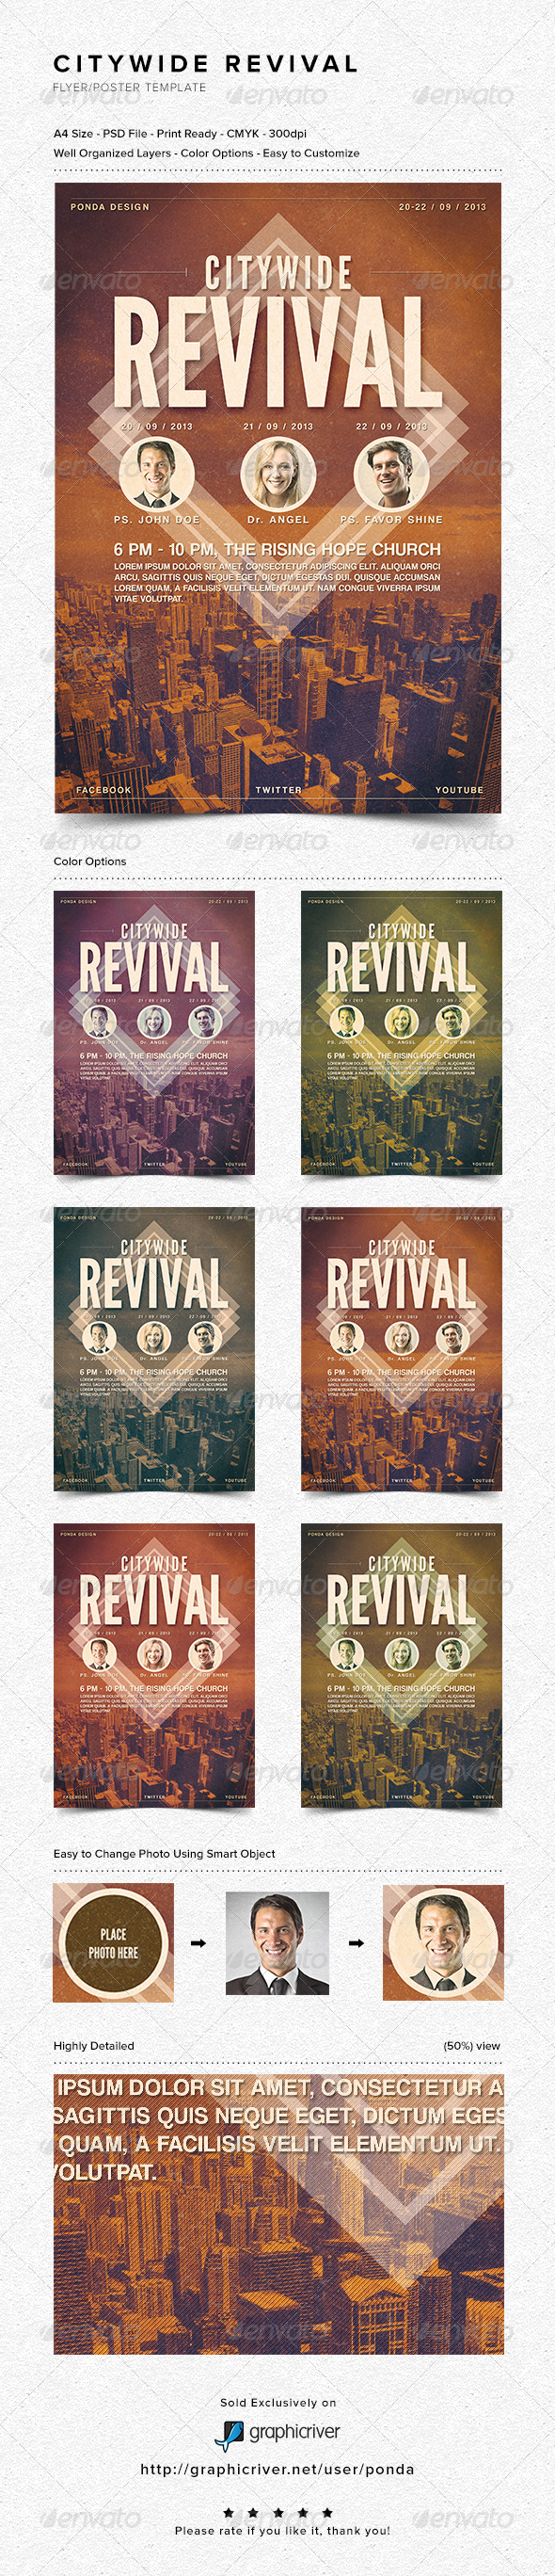 Citywide Revival Flyer/Poster Template - Church Flyers